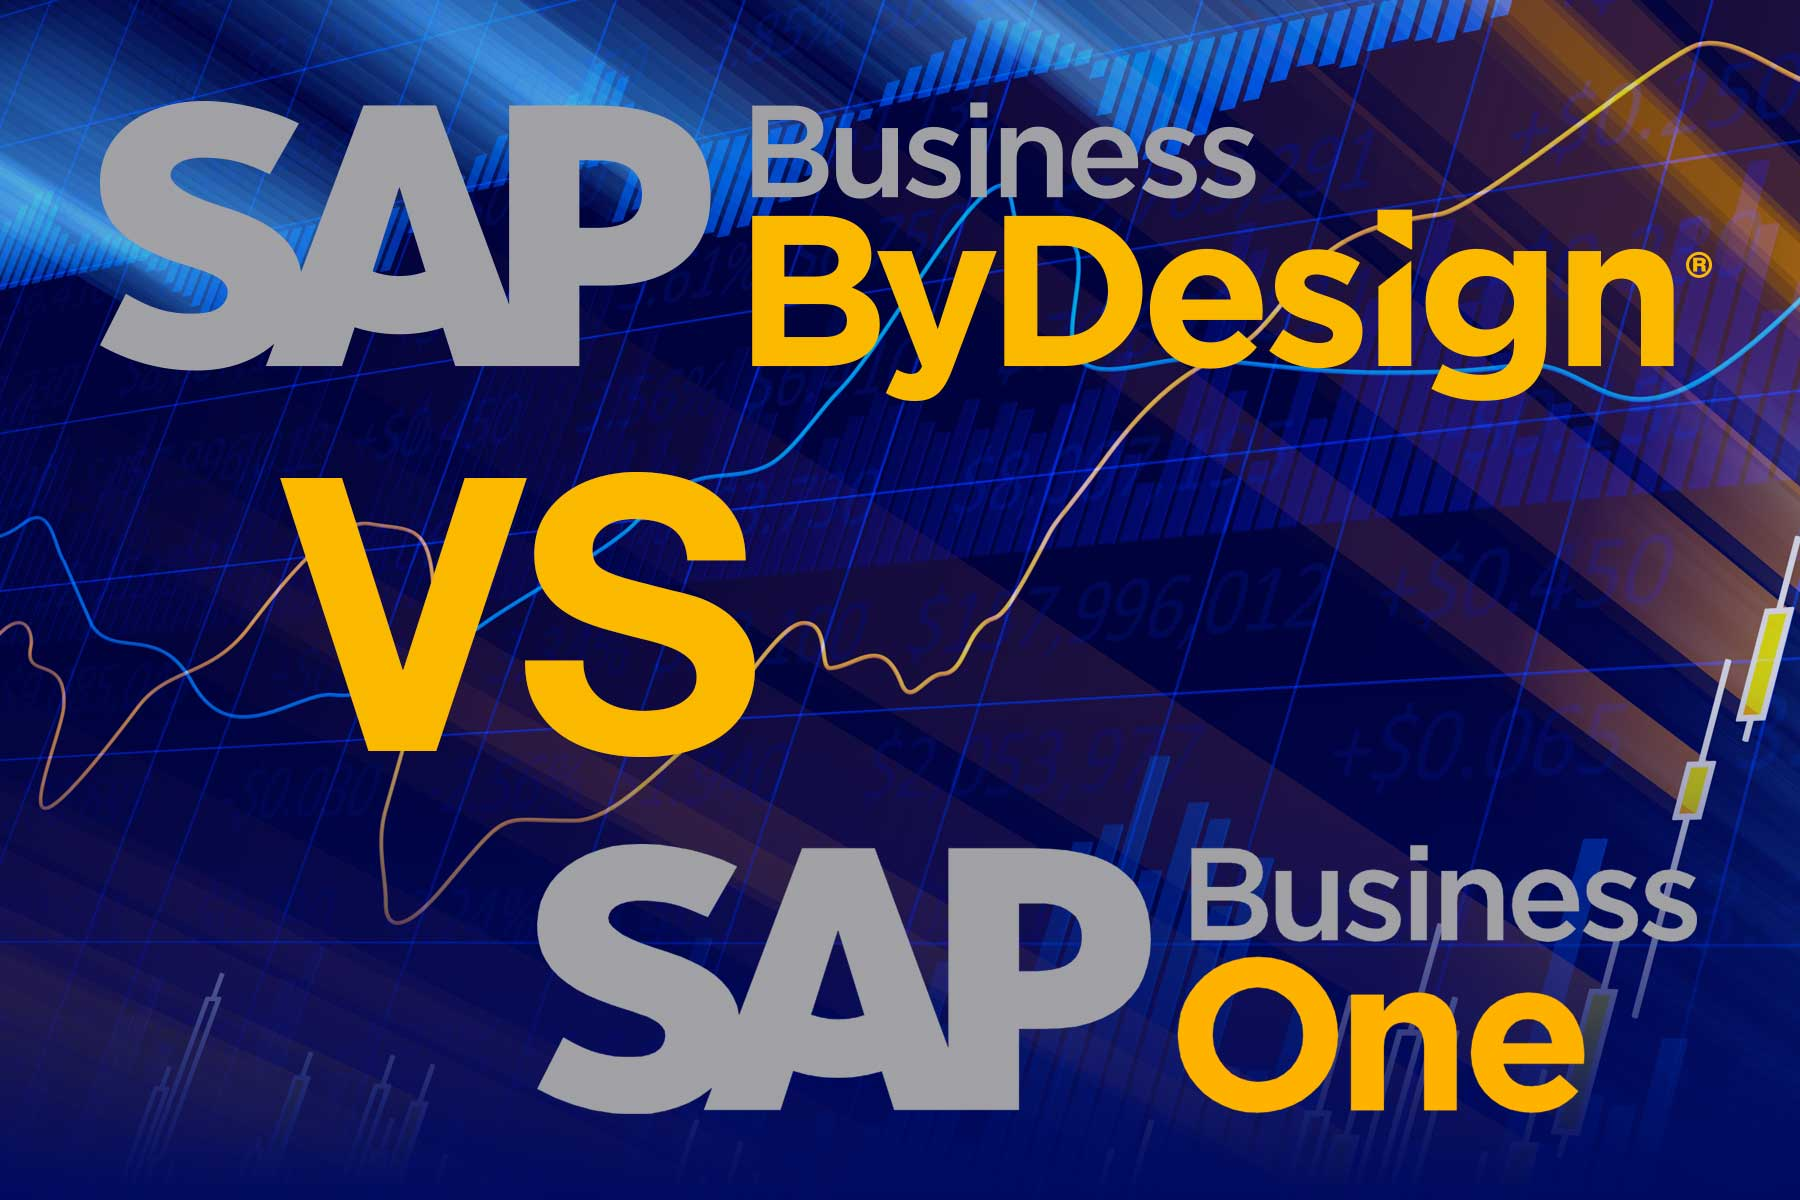 SAP Business ByDesign vs SAP Business One